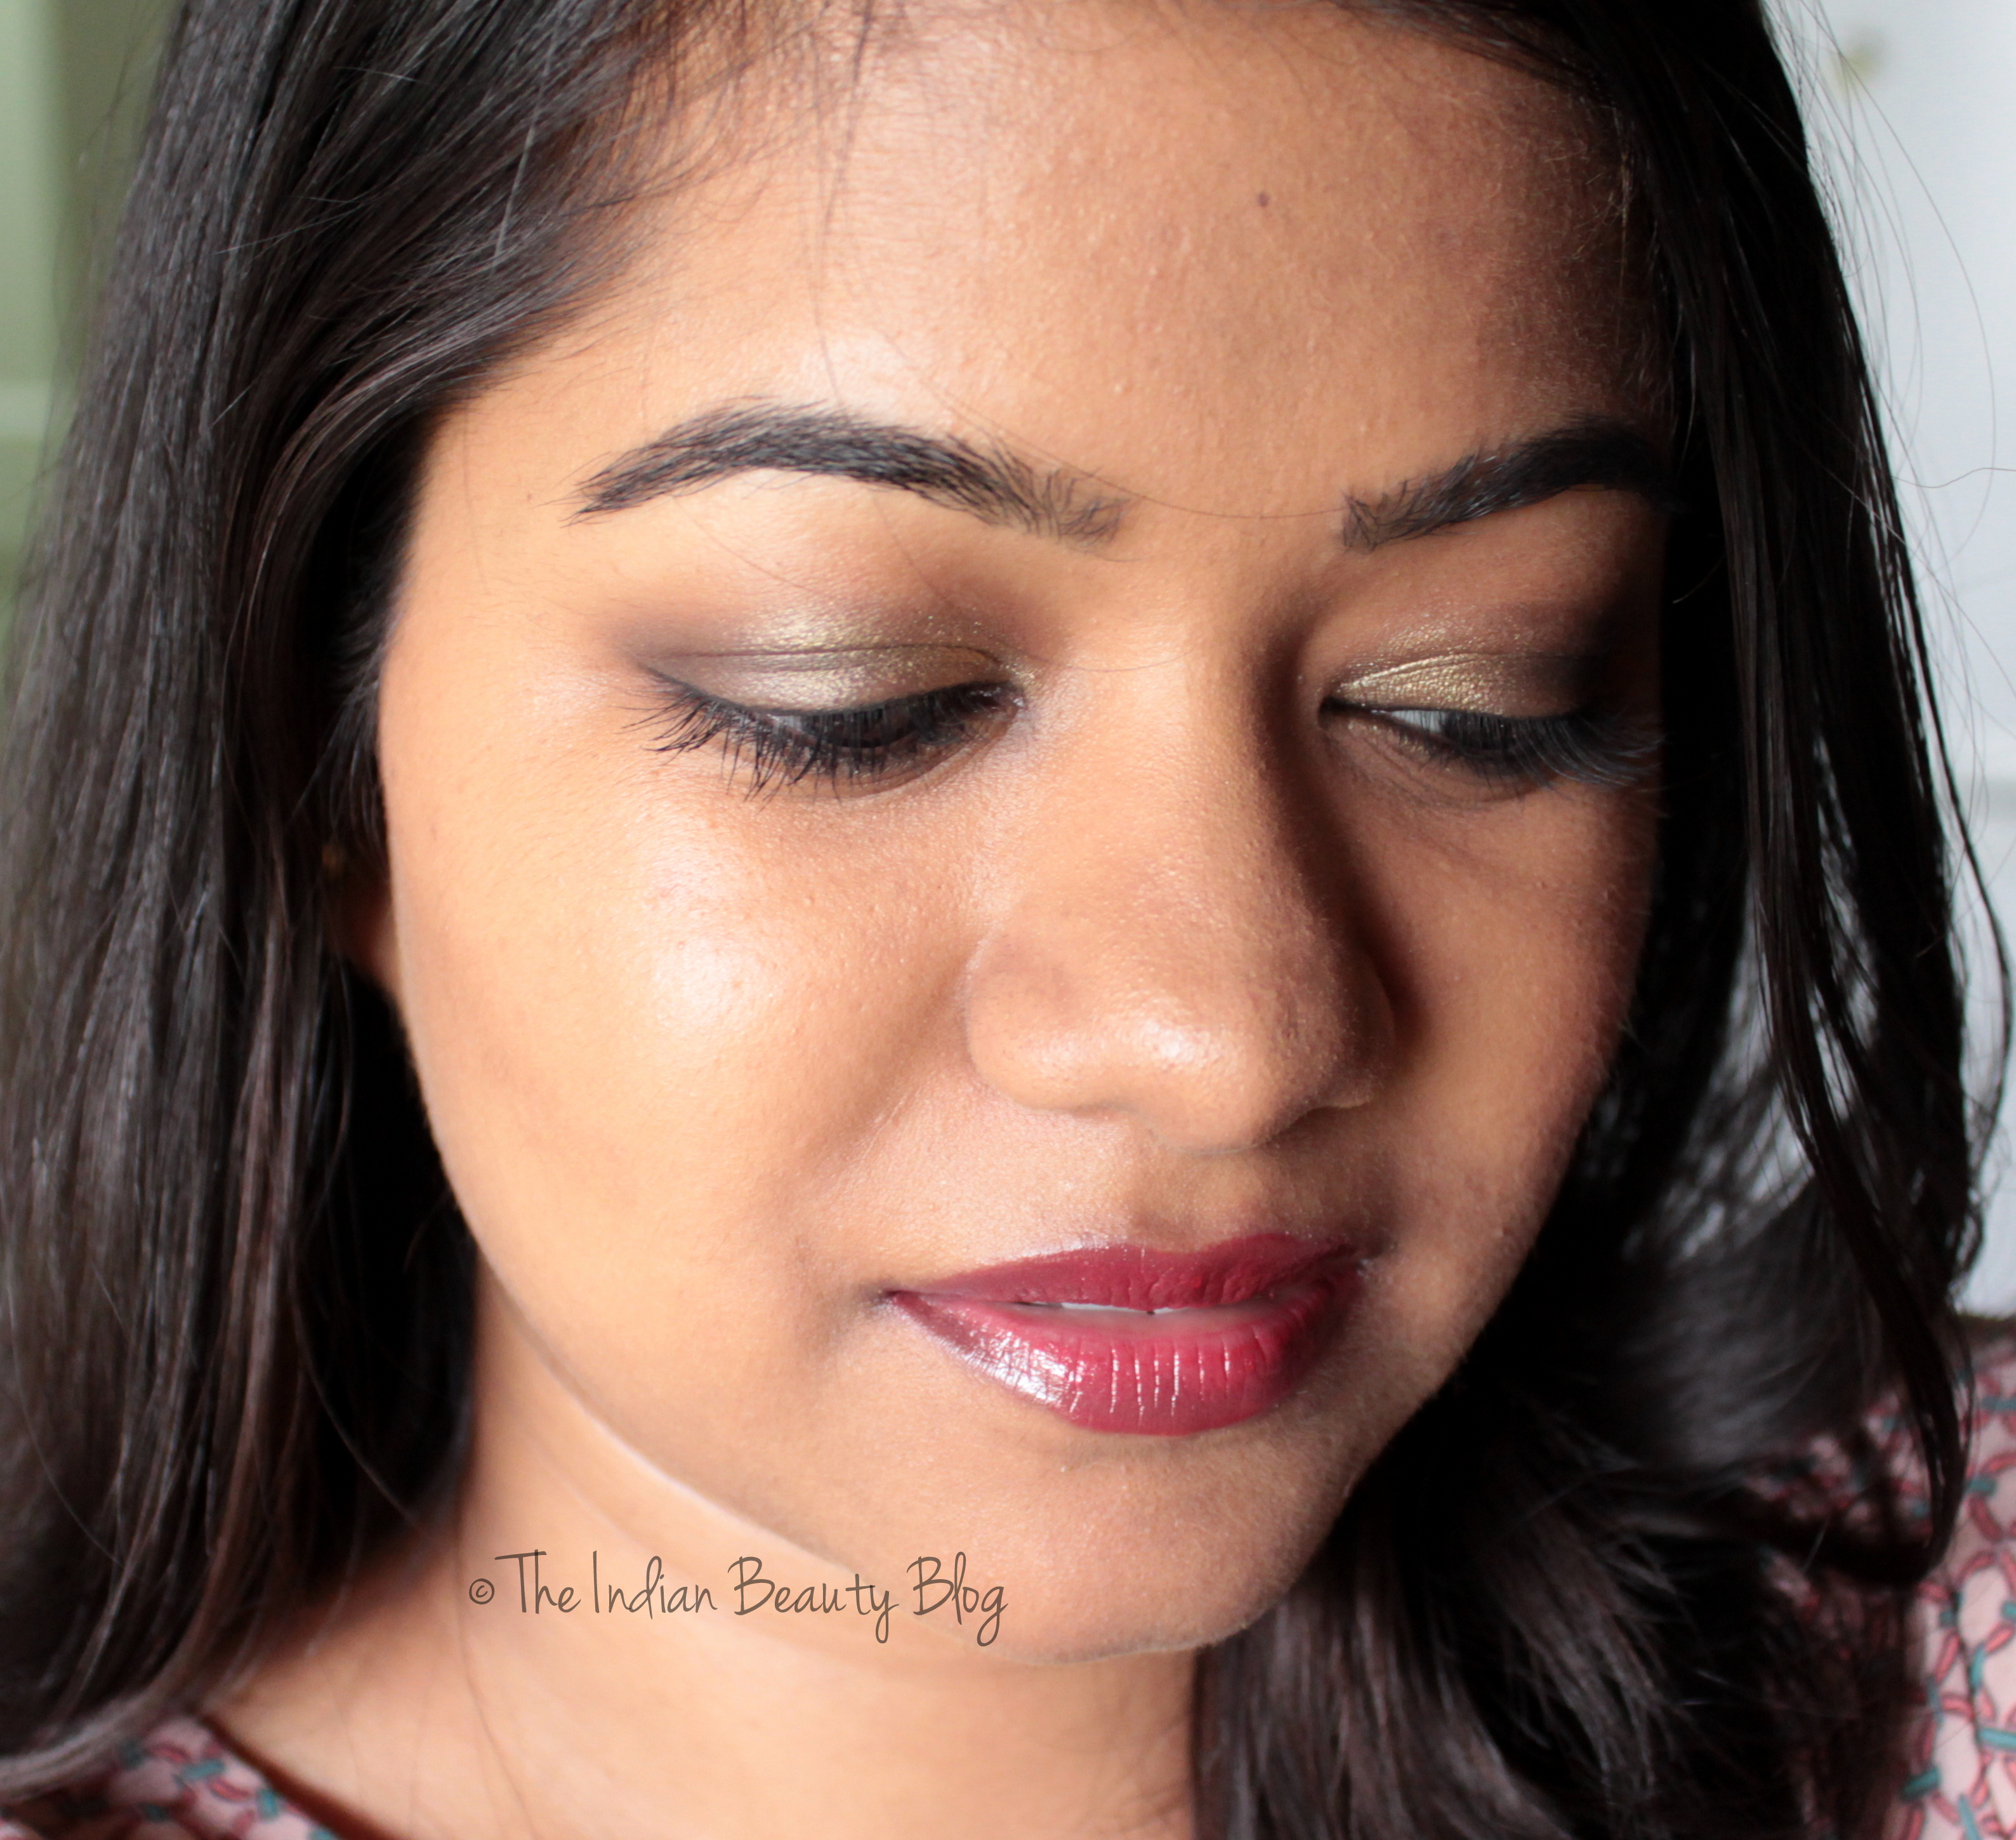 Current go-to party makeup look: Golden brown smokey eyes with red lips!